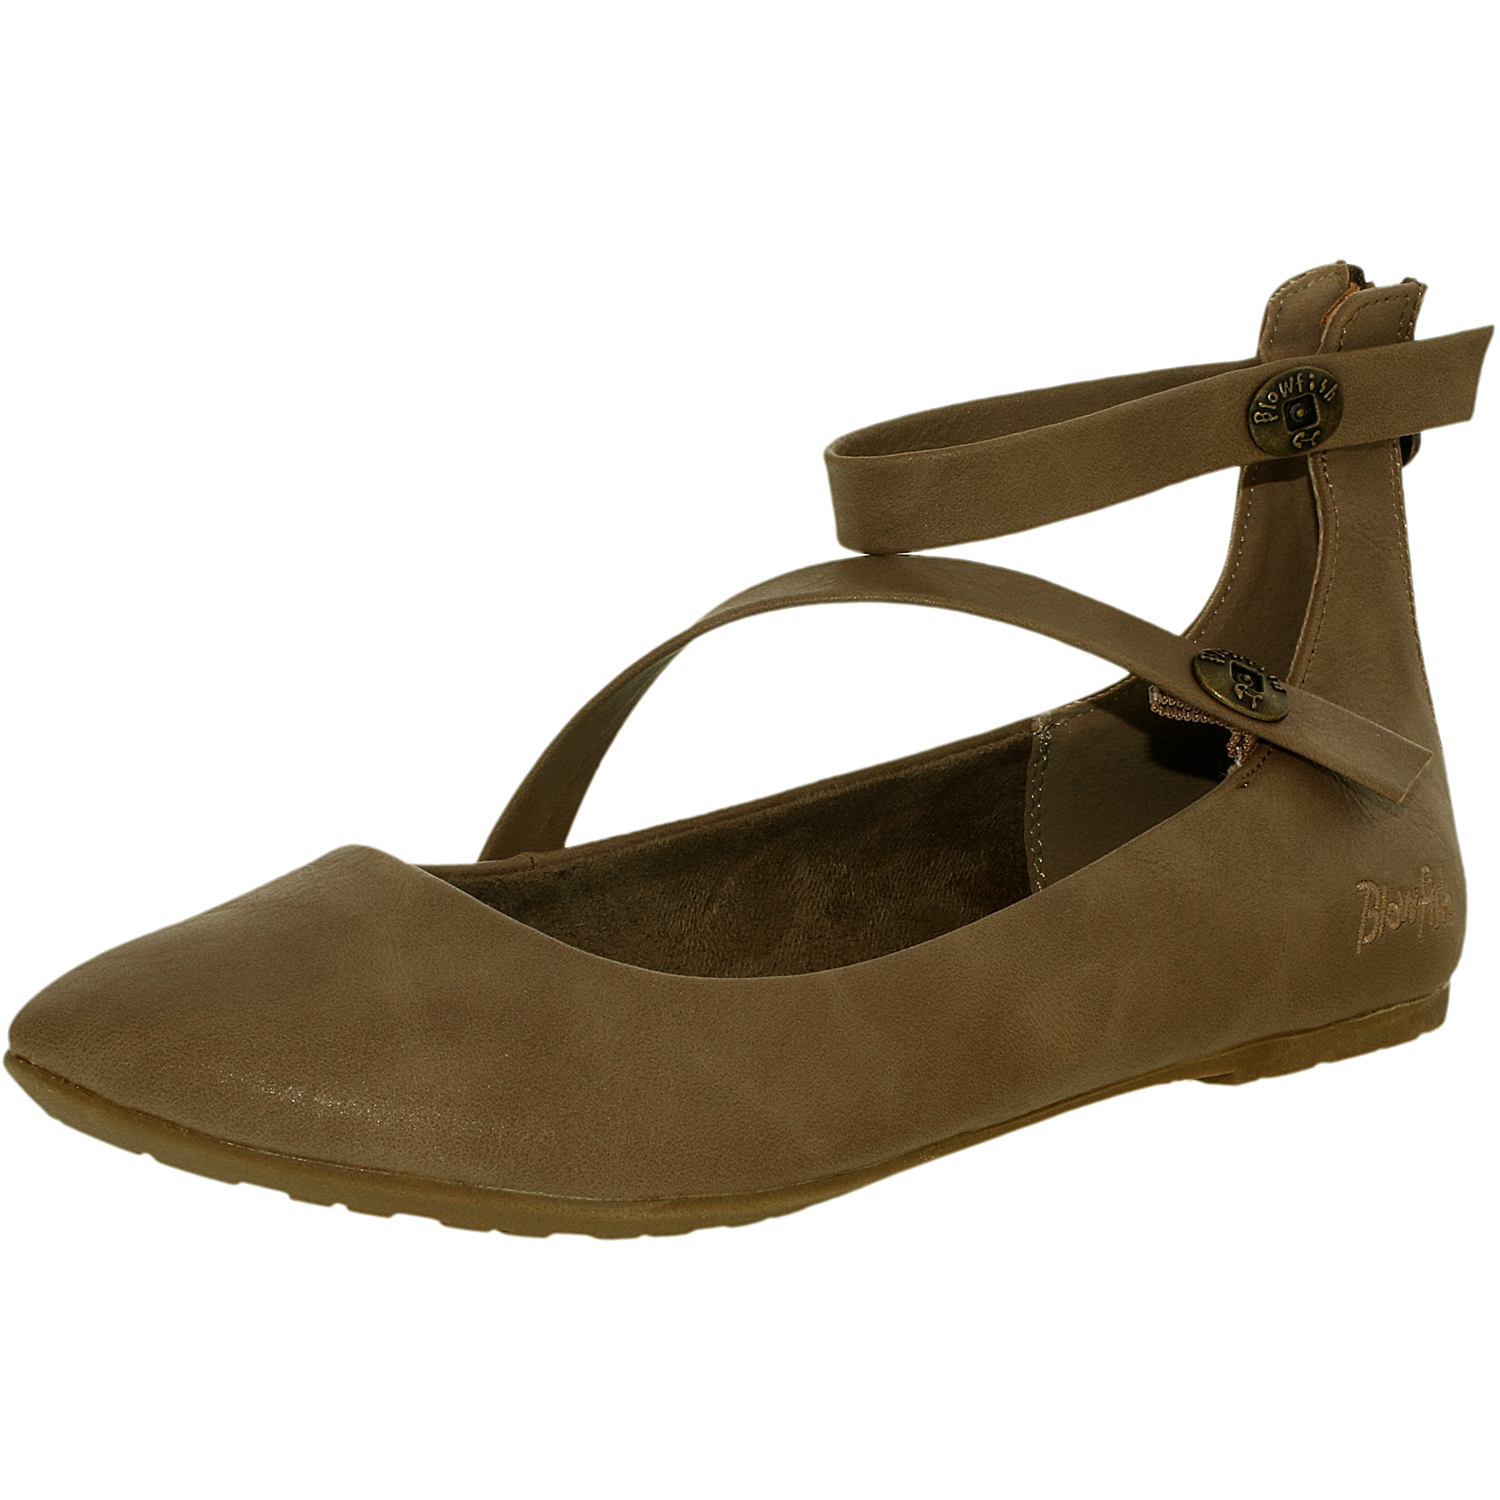 Blowfish Women's Ranton Toast Old Ranger Ankle-High Leather Ballet Flat - 6.5M